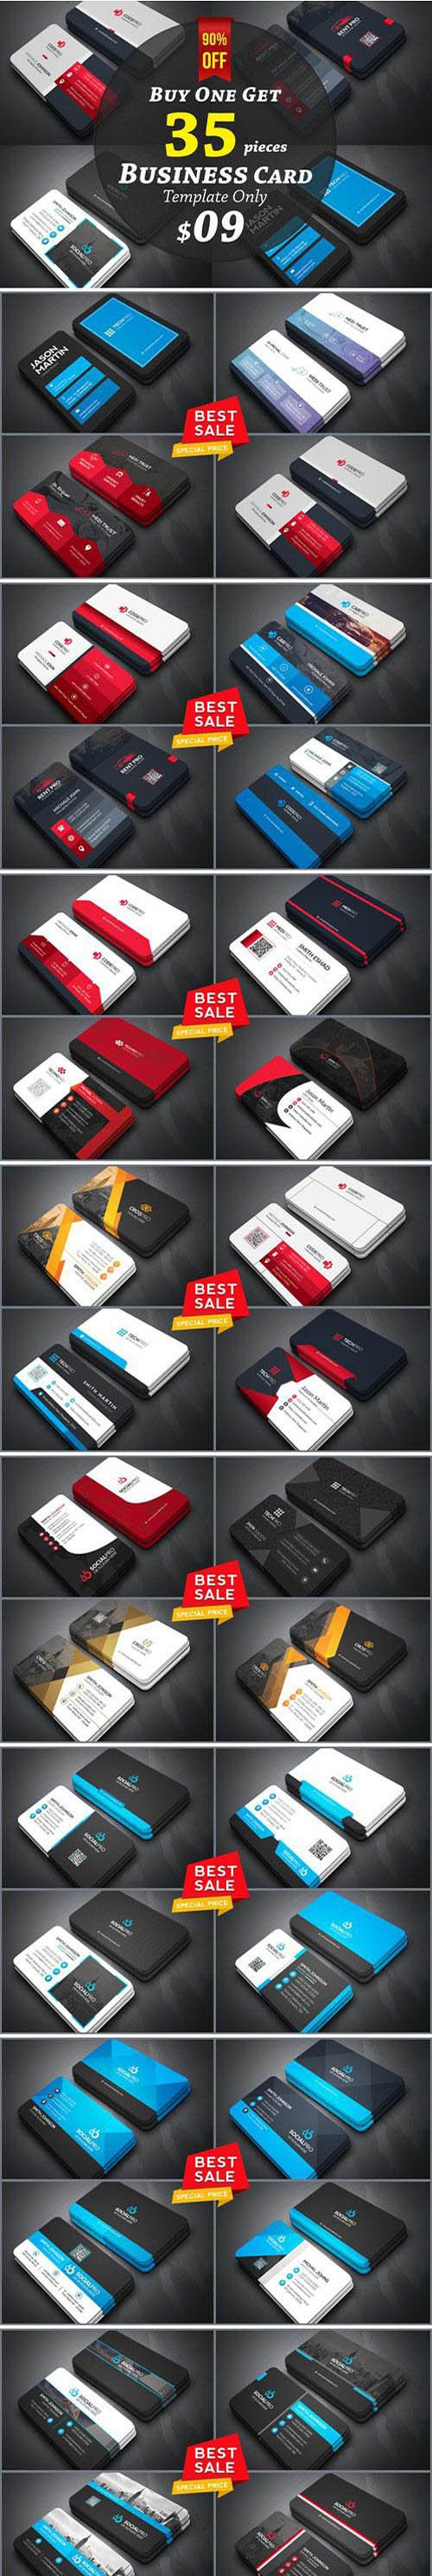 35 Business Cards Bundle 90% off 2102015